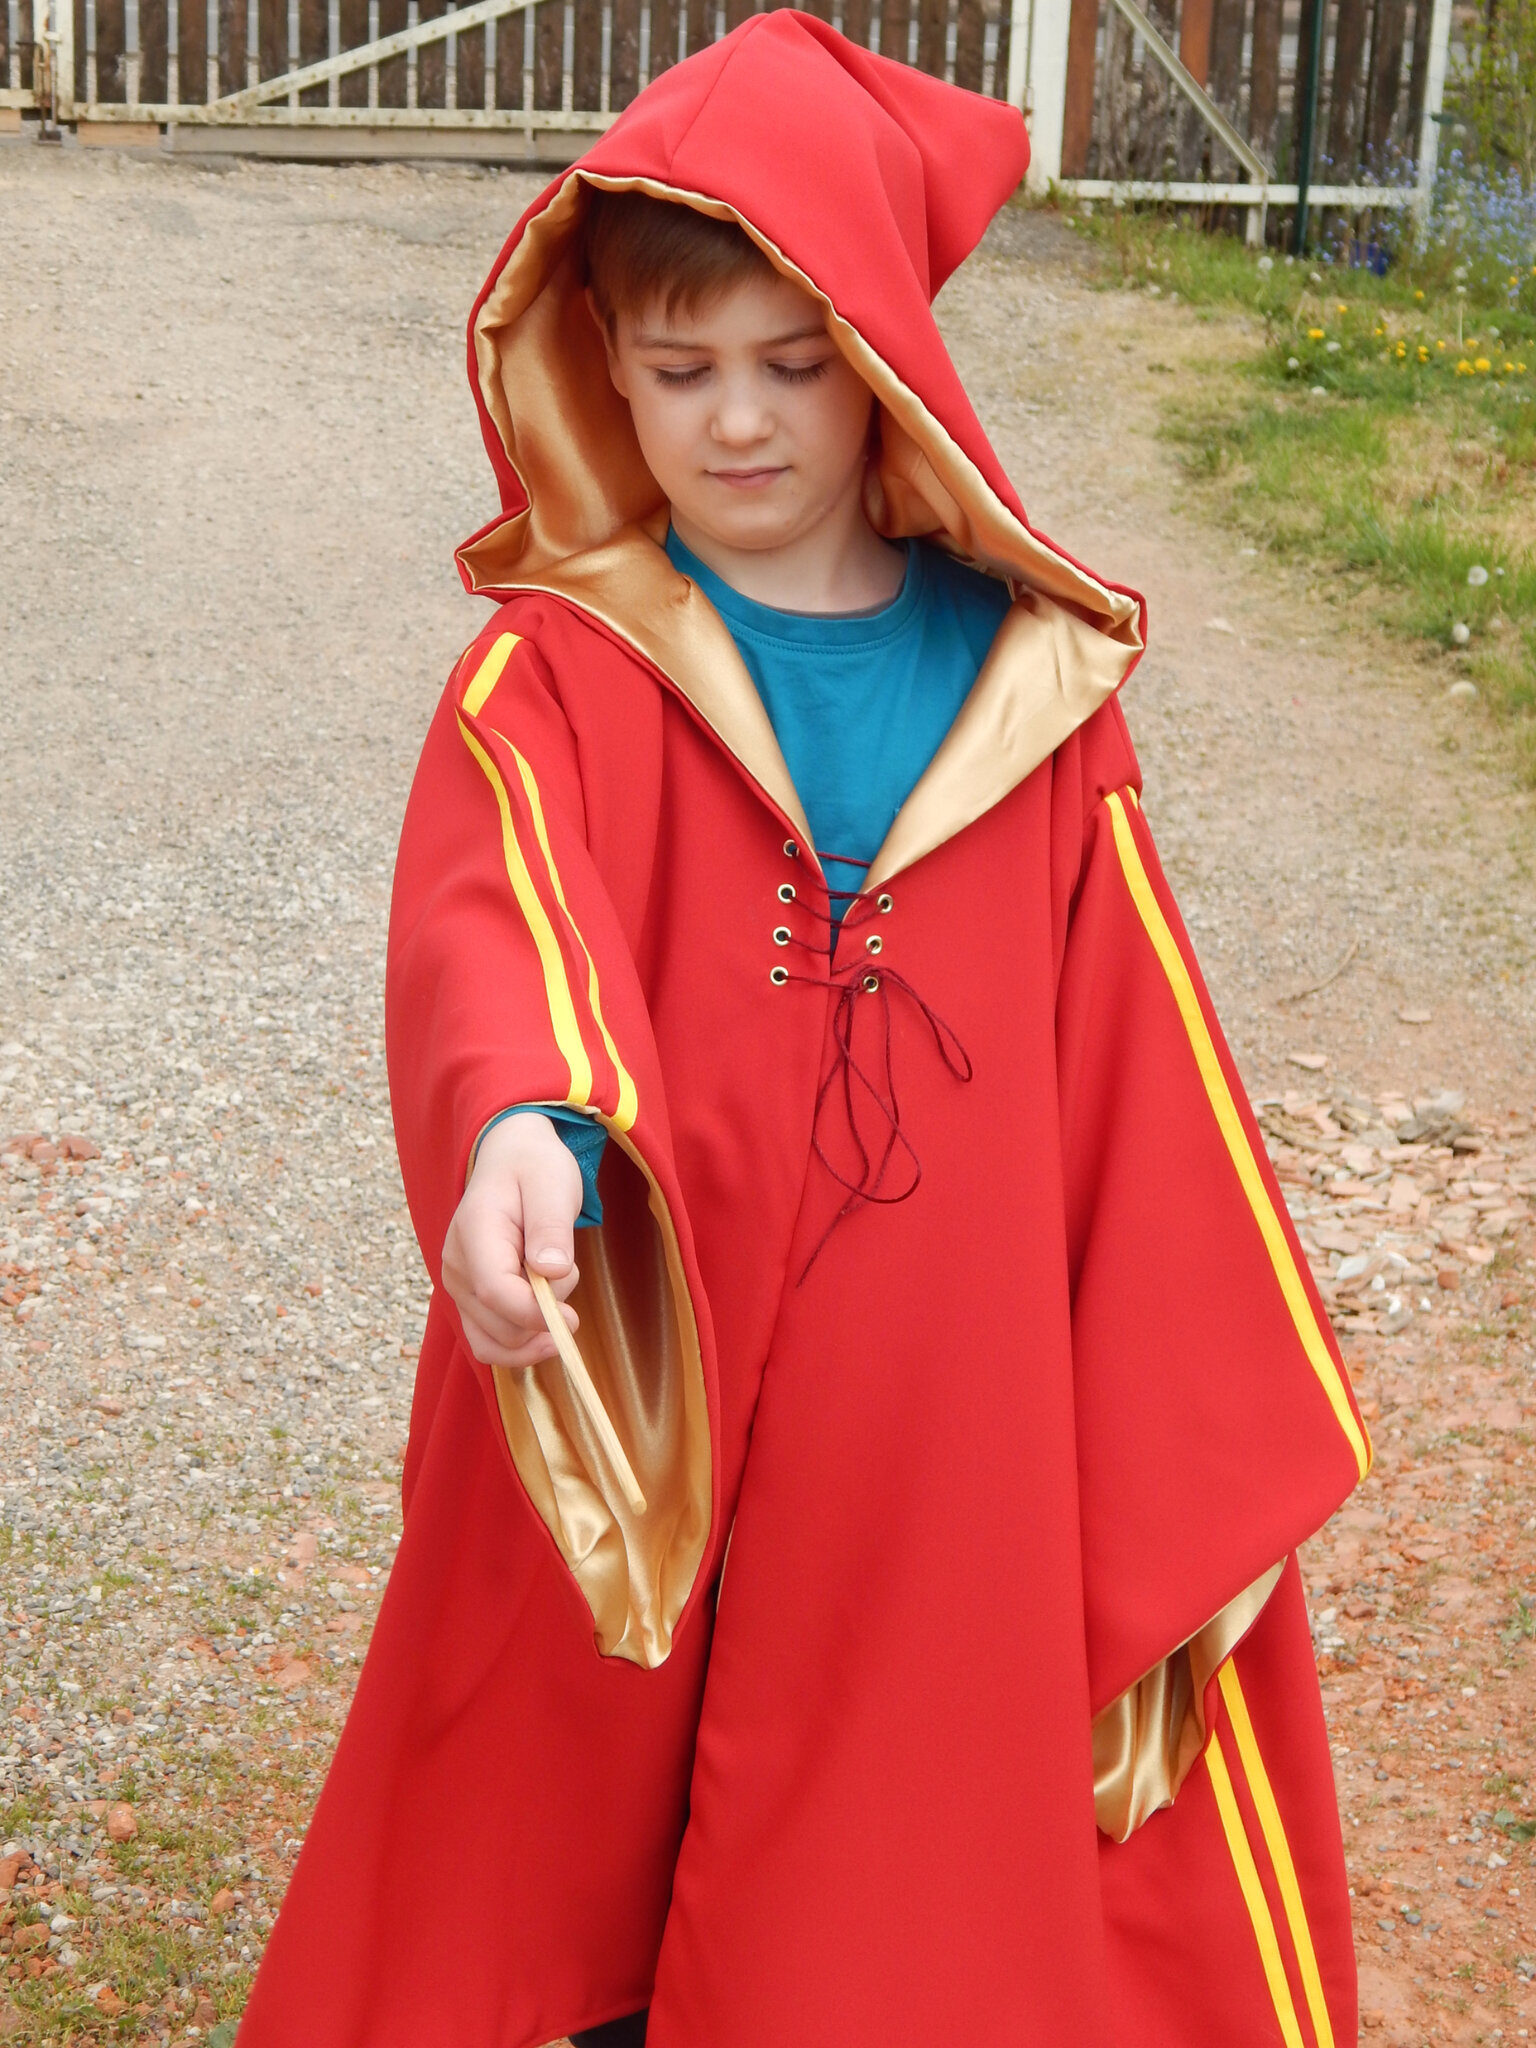 Costume de la cape de quidditch de Harry Potter